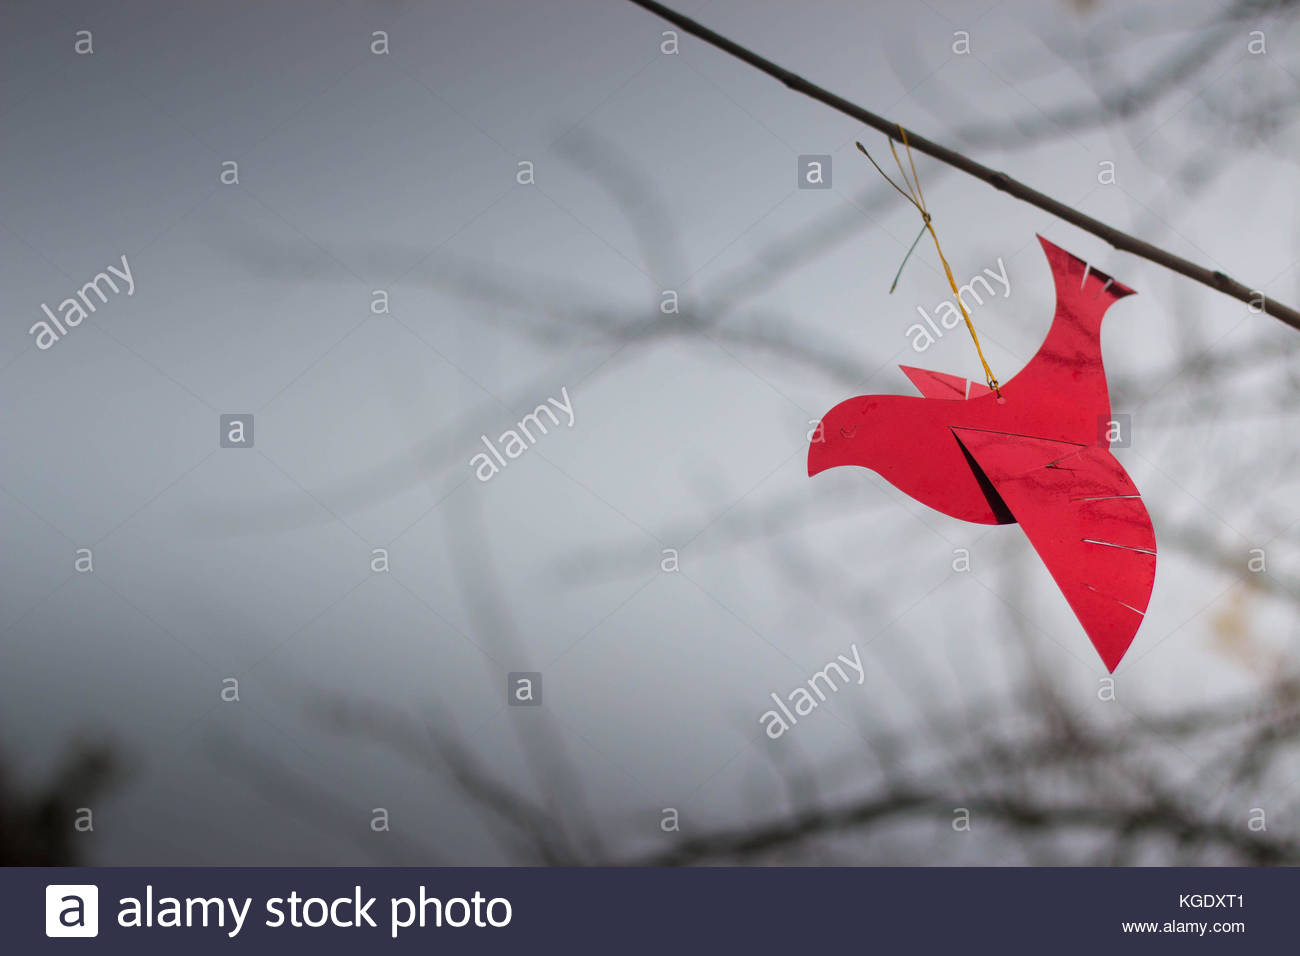 Shiny red bird ornament on a branch with cold winter sky in the 1300x956